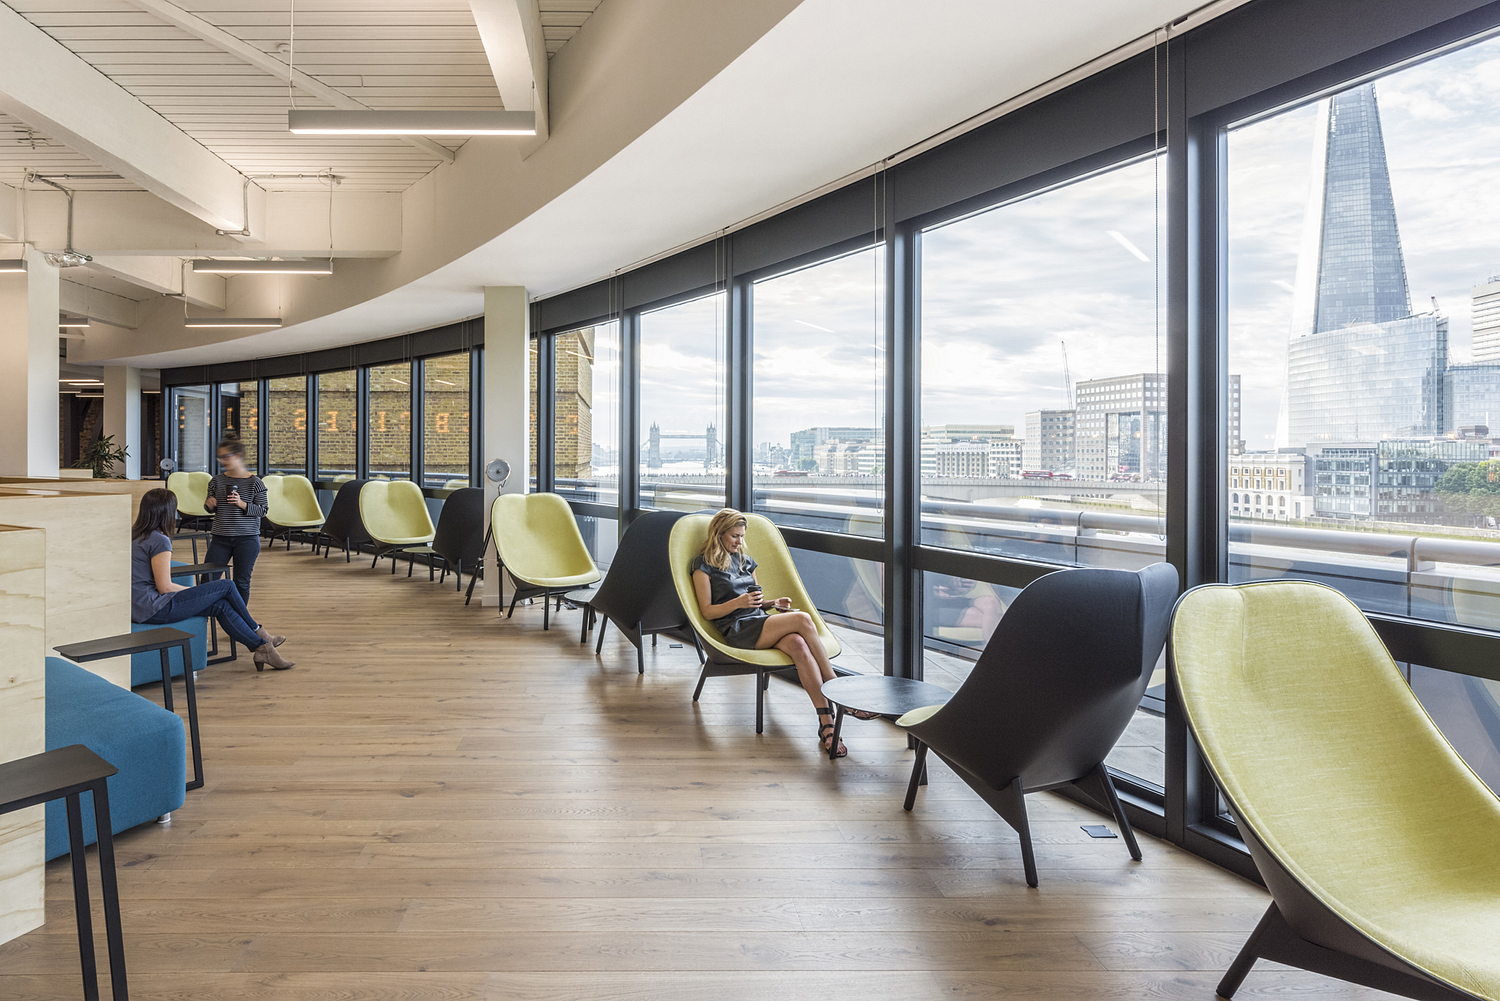 Office break-out area with views of London